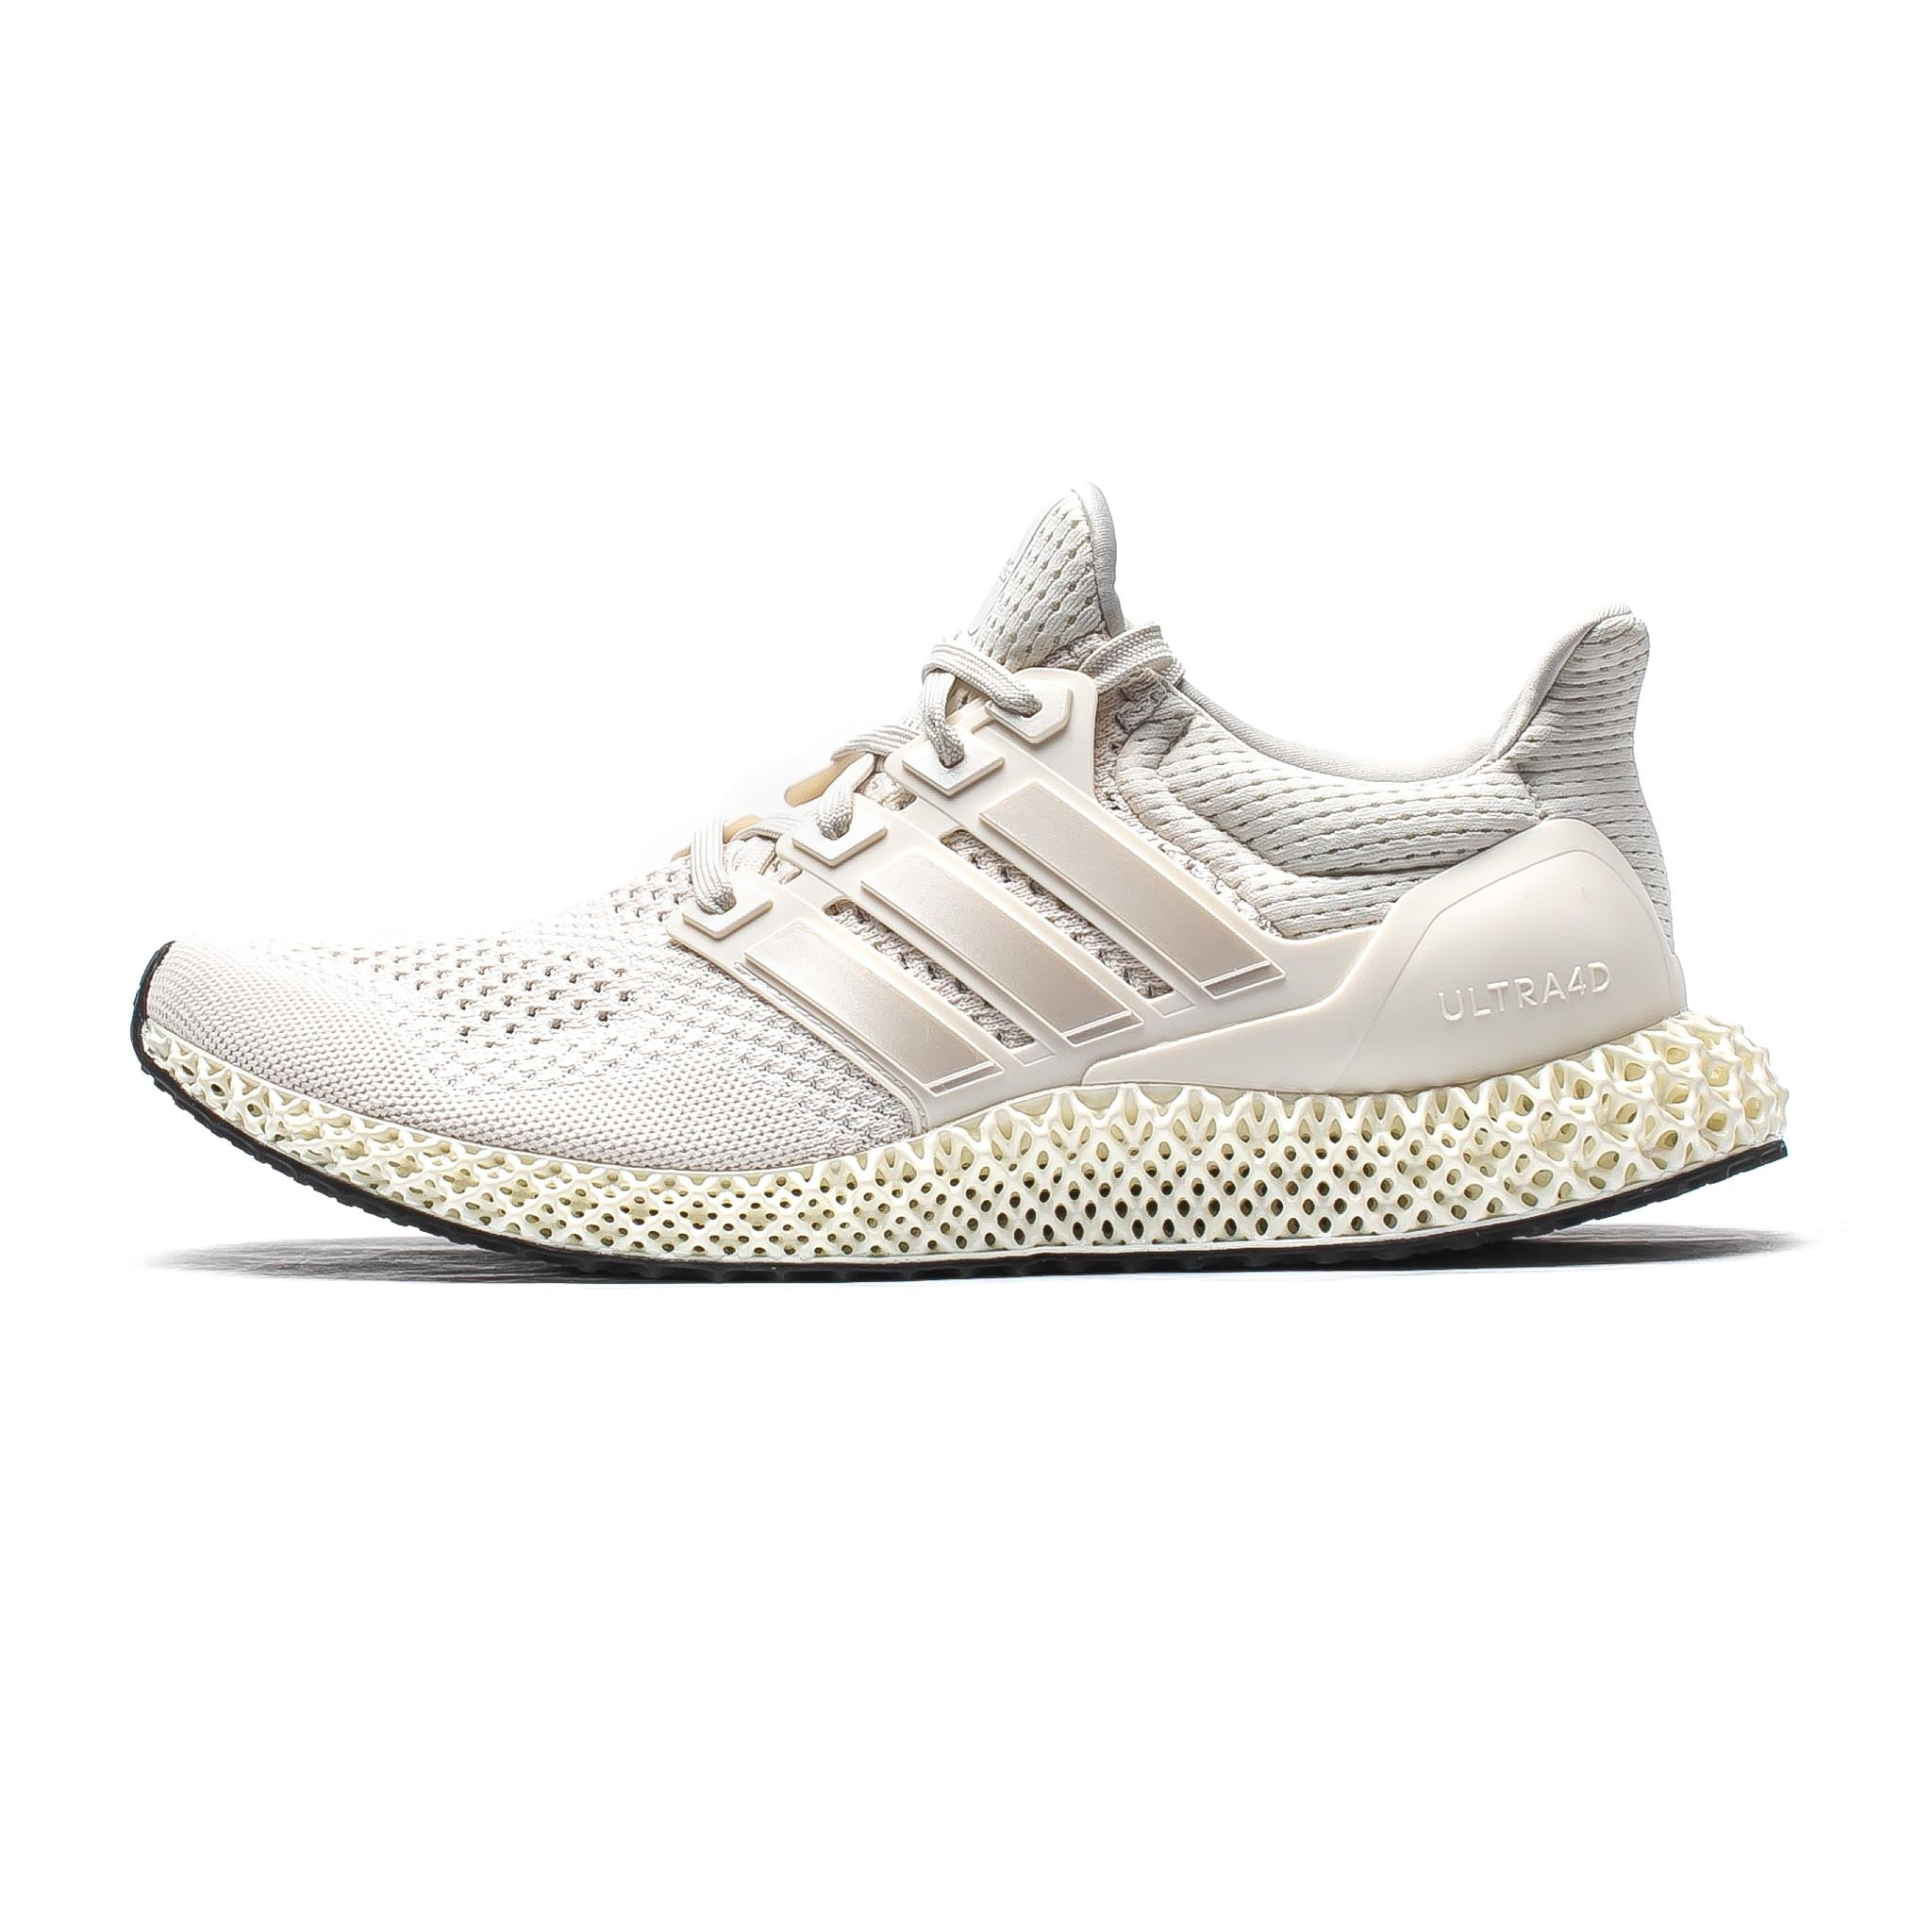 ADIDAS Ultra 4D Chalk White